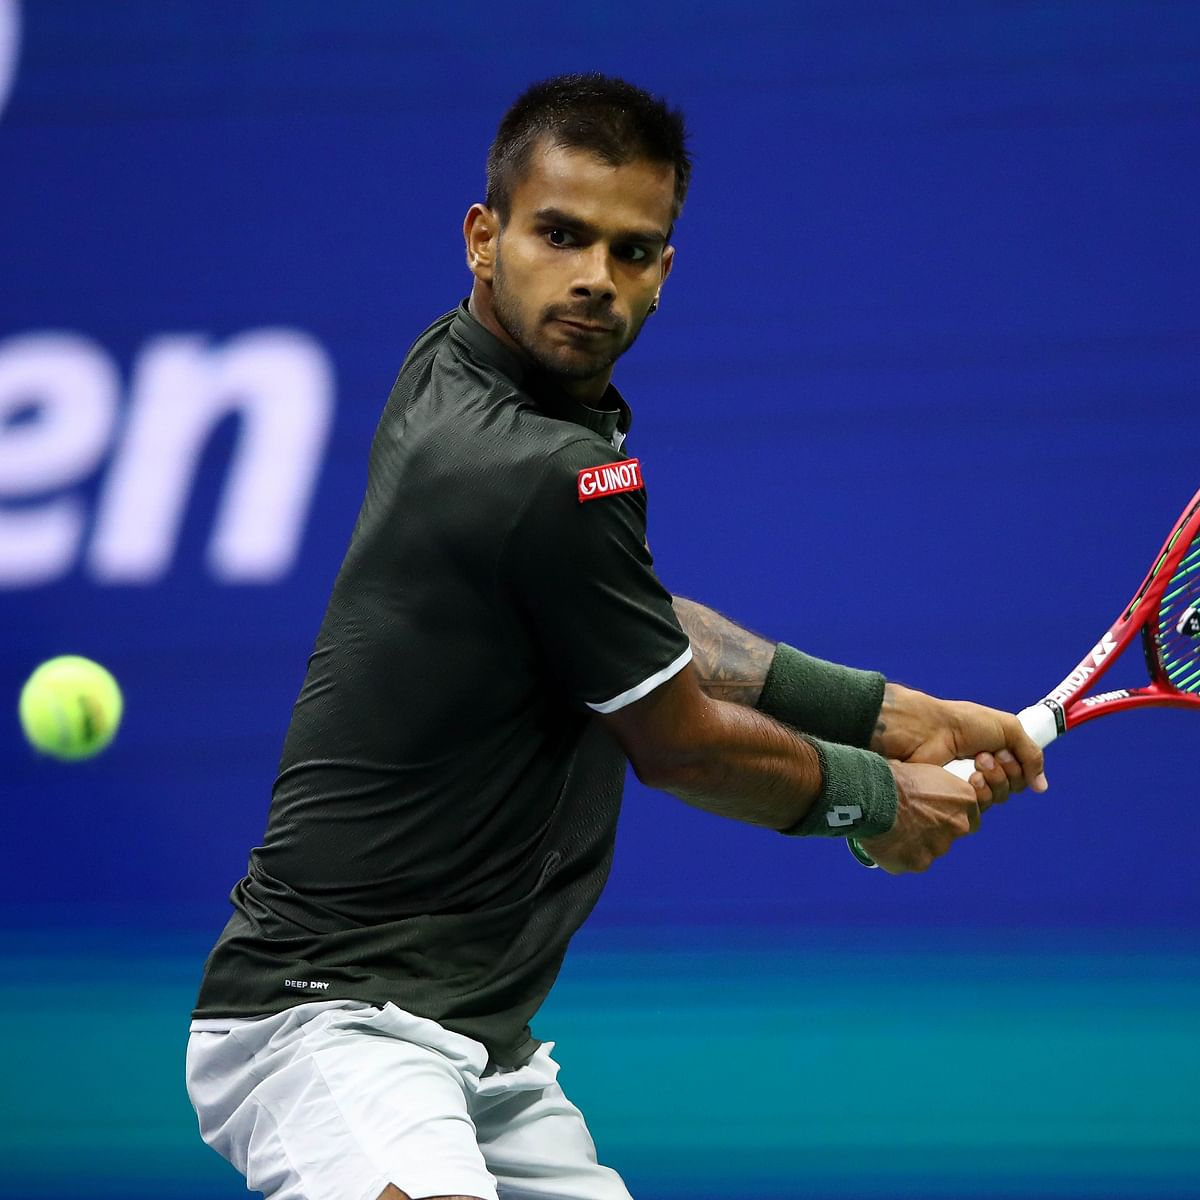 'Lots to learn': Sumit Nagal after crushing defeat to Dominic Thiem in US Open